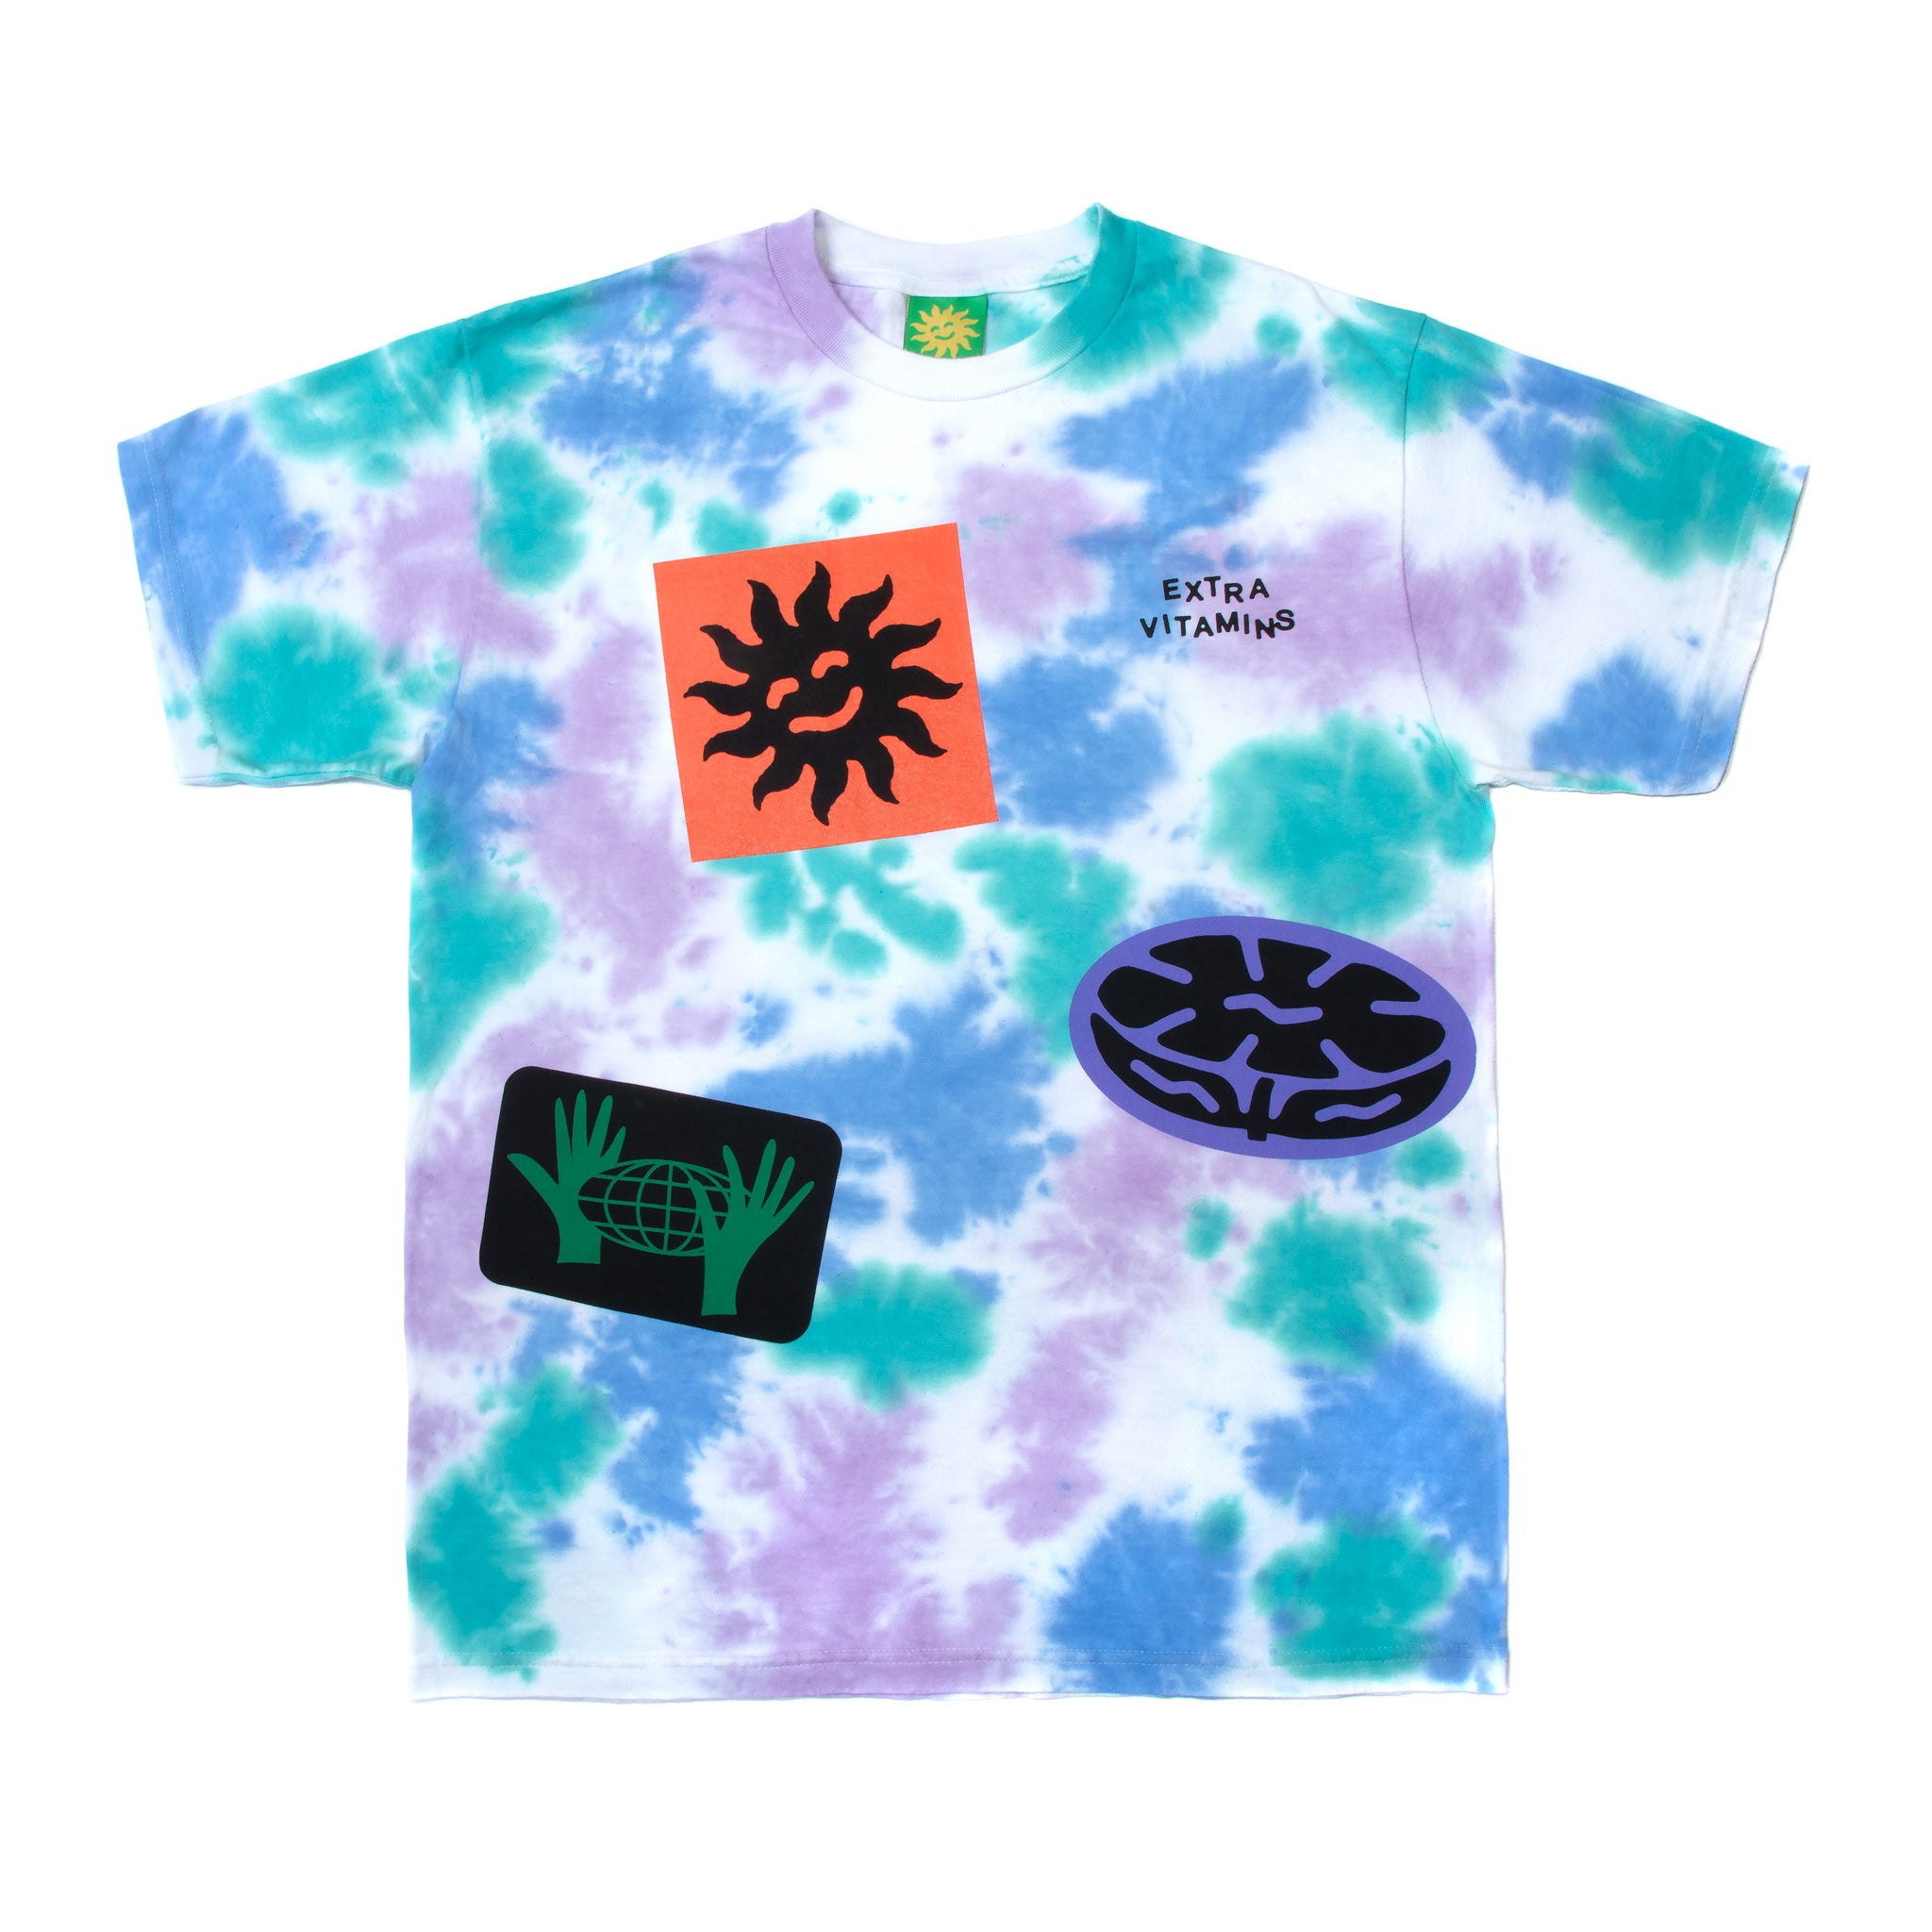 Sticker Dye T-shirt